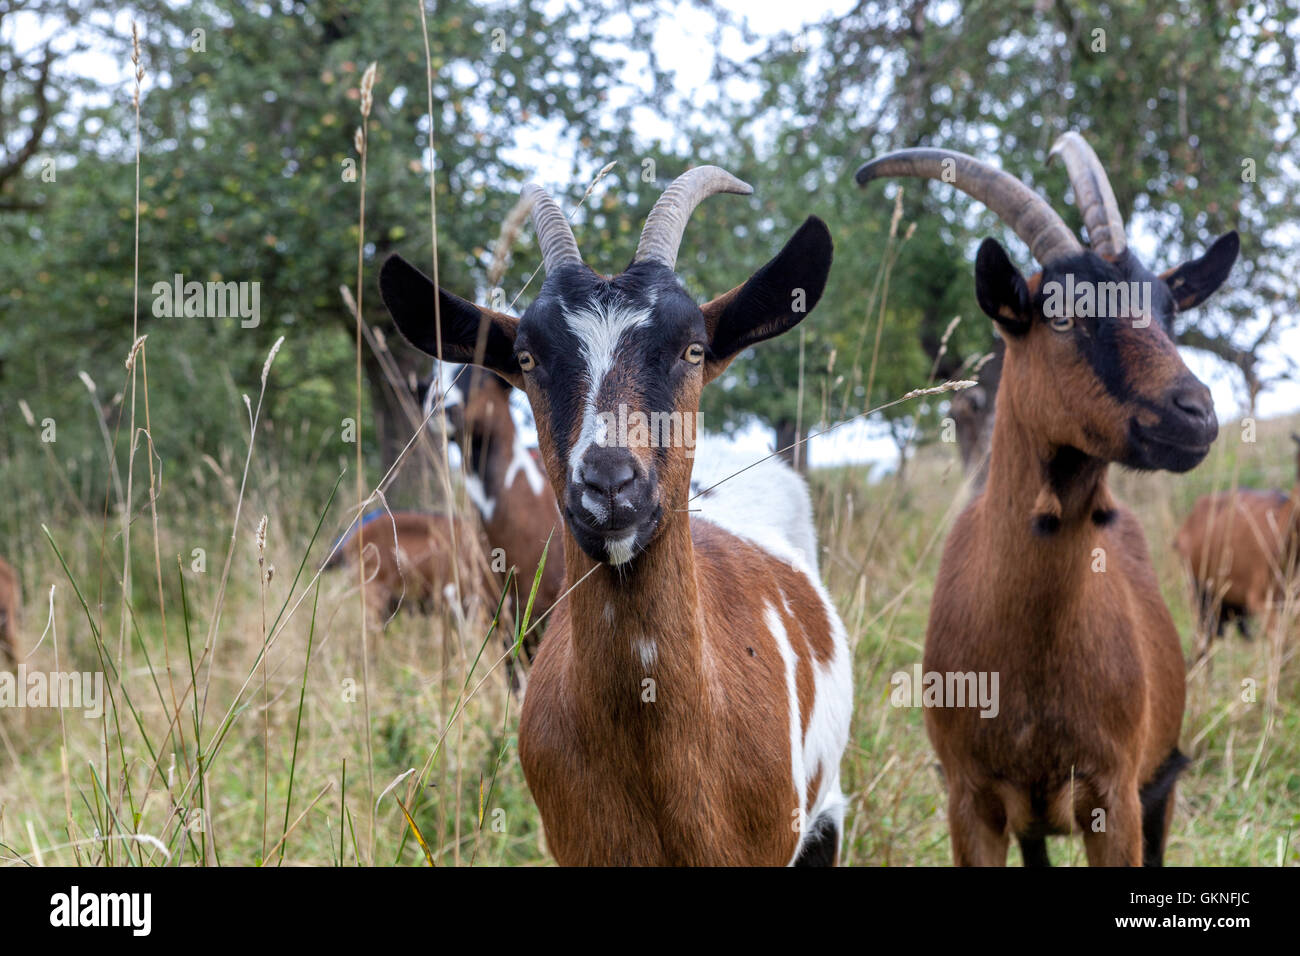 Goats with horns, Czech Republic - Stock Image